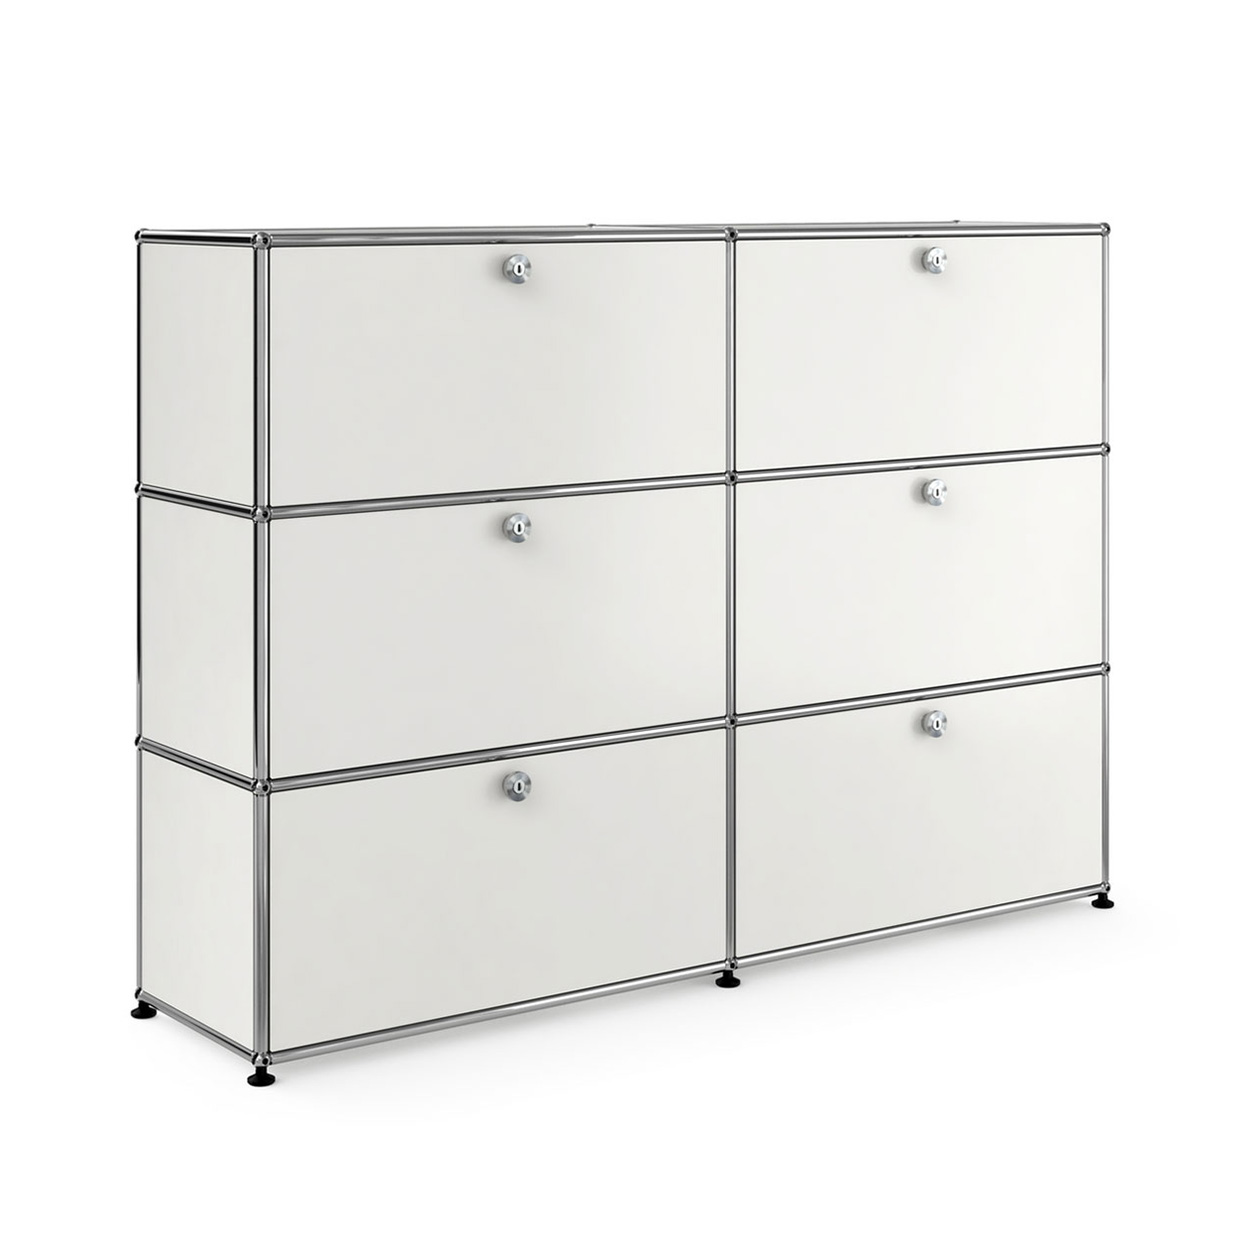 usm haller sideboard im online shop pro office. Black Bedroom Furniture Sets. Home Design Ideas